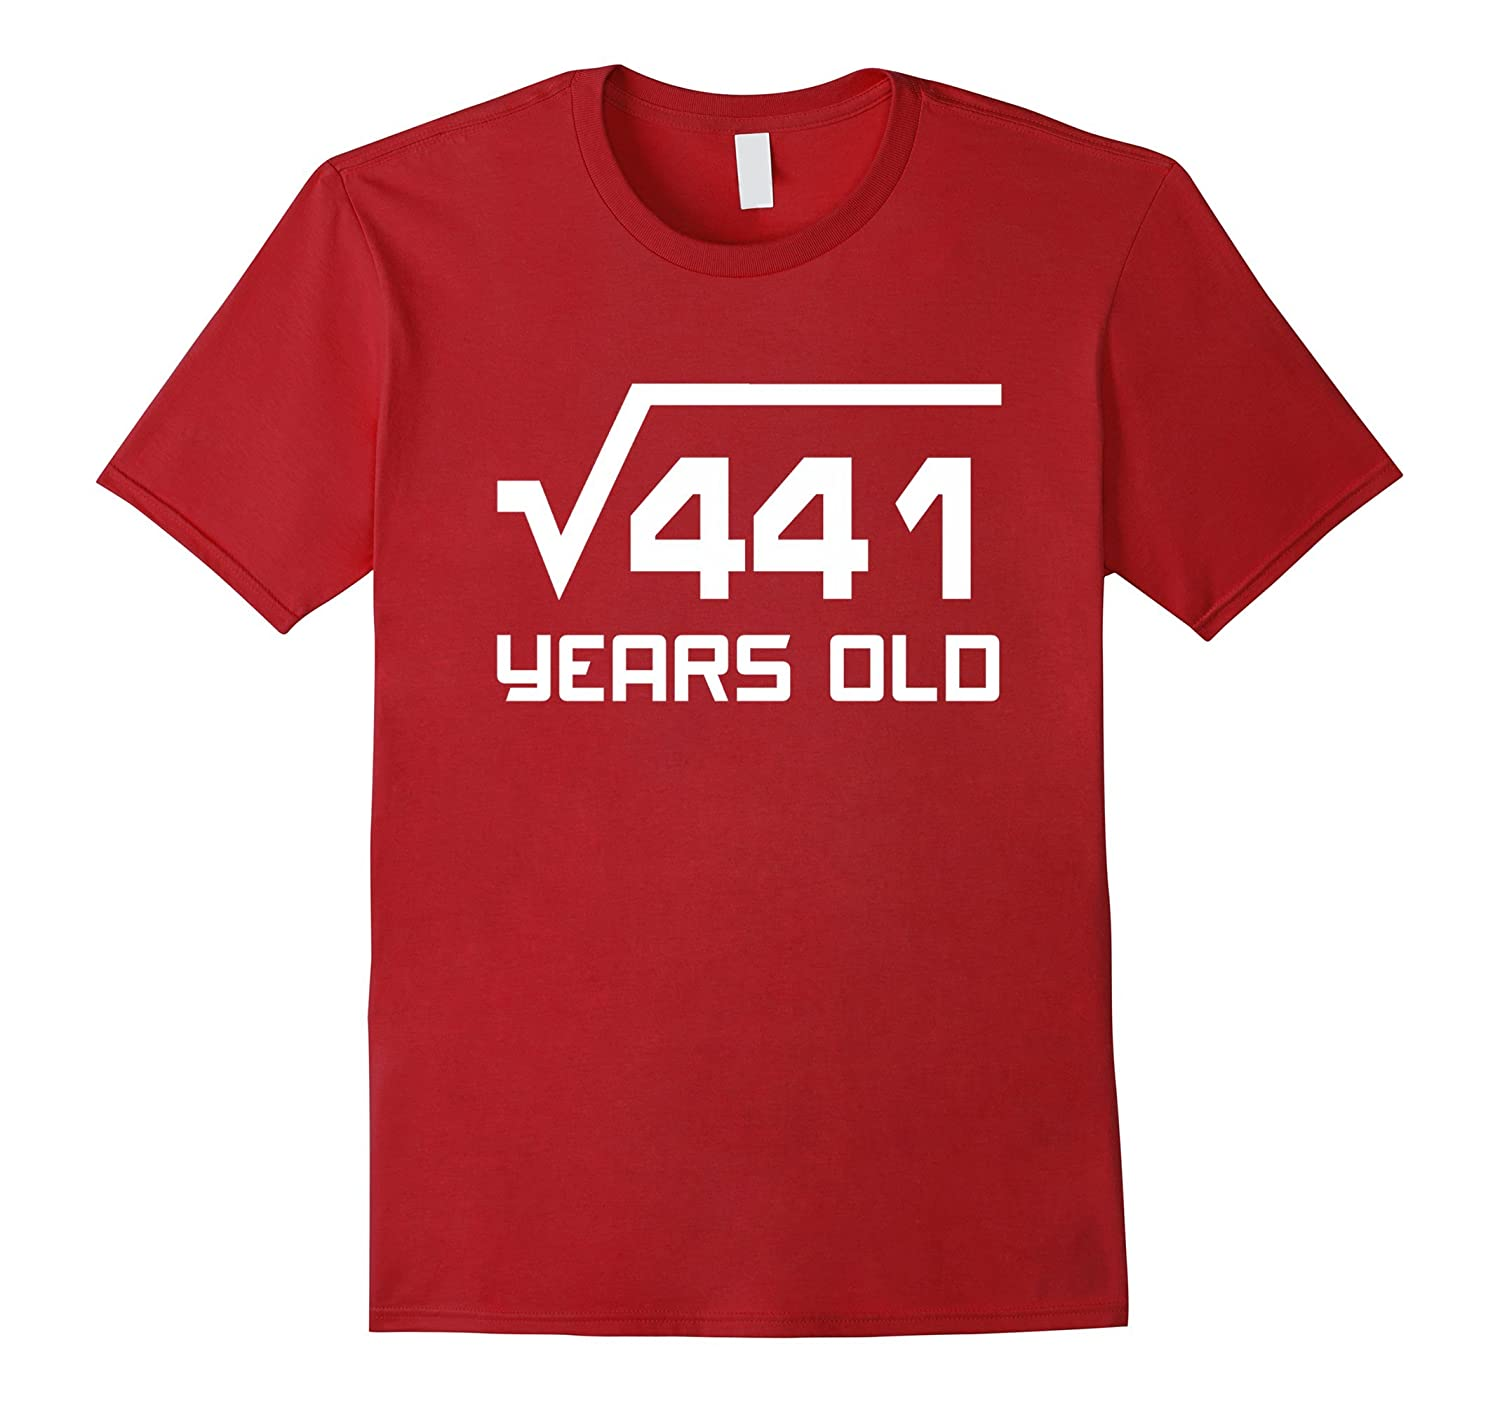 Square Root 441 21 Years Old Shirt 21st Birthday Gift Ideas RT